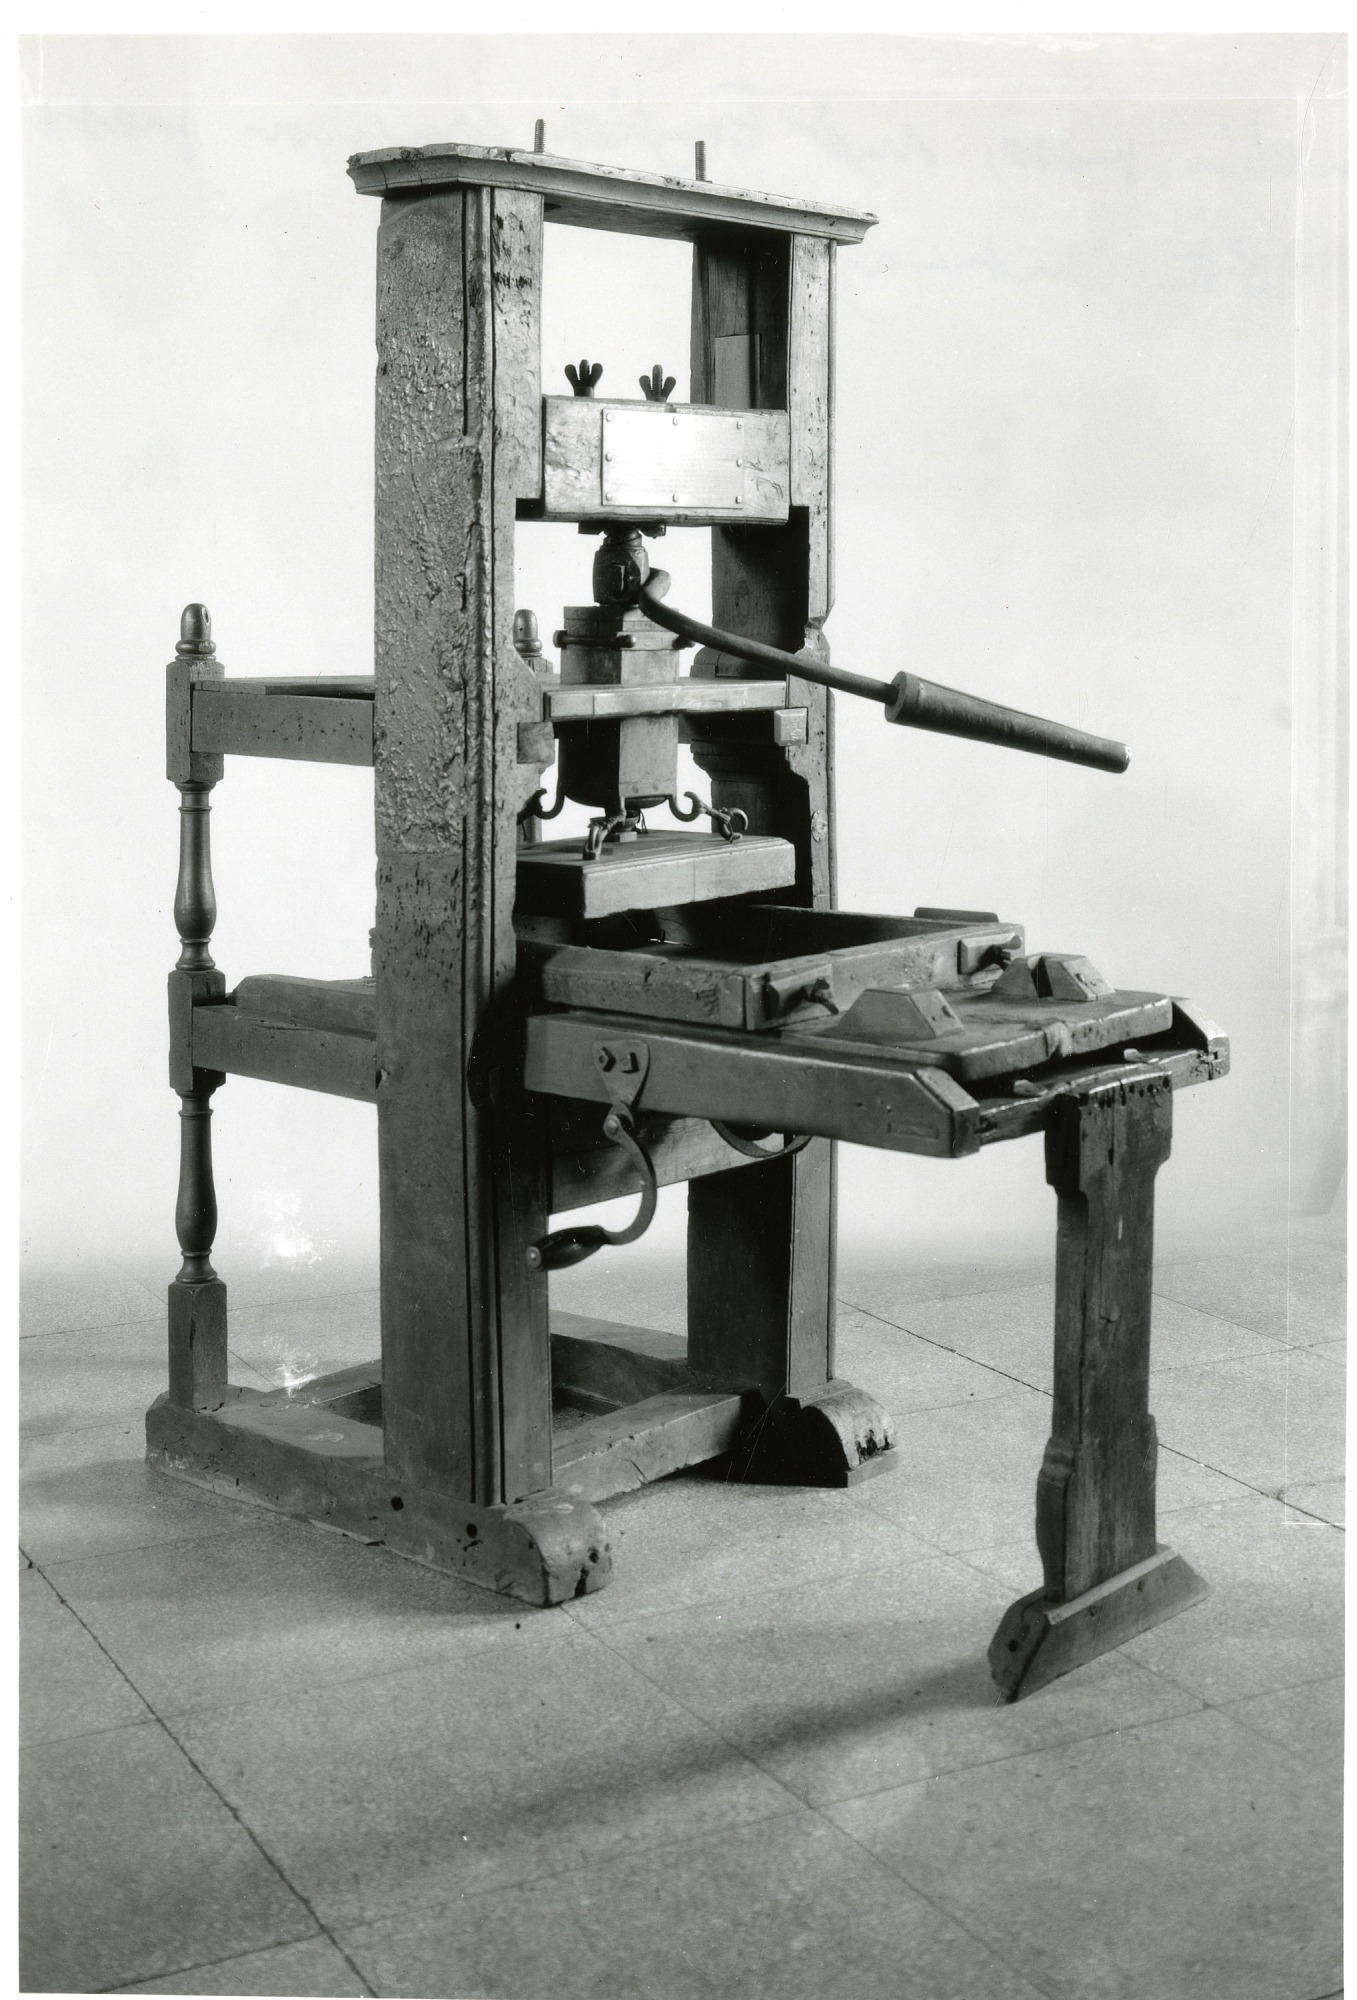 Franklin Printing Press, by Unknown, Smithsonian Archives - History Div, SIA2010-2429 or 17539-B or MAH-17539B.